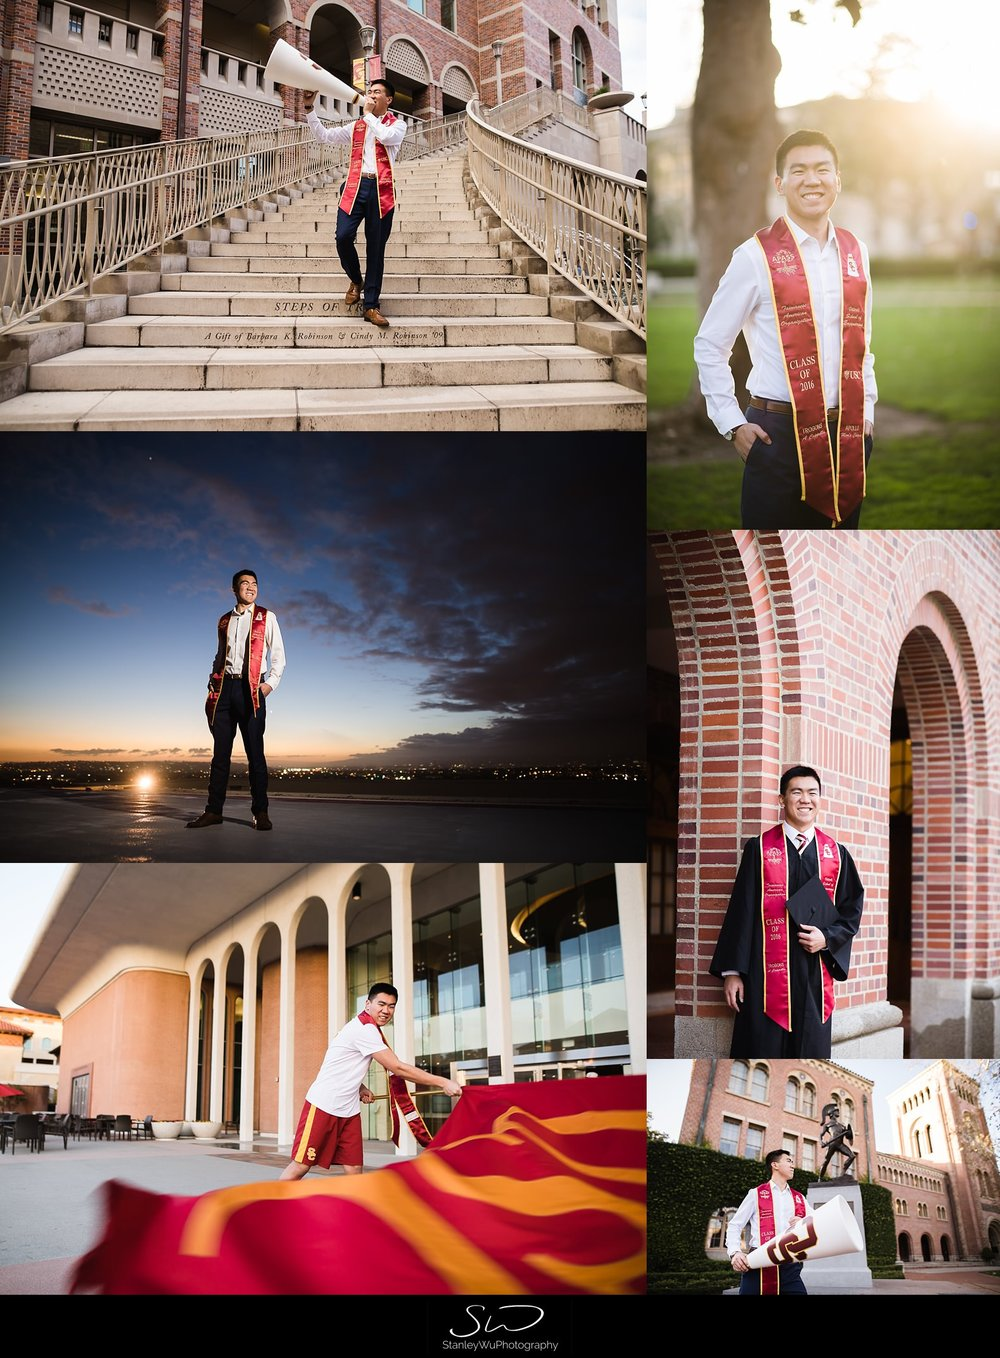 los-angeles-ucla-usc-creative-rooftop-graduation-senior-portraits